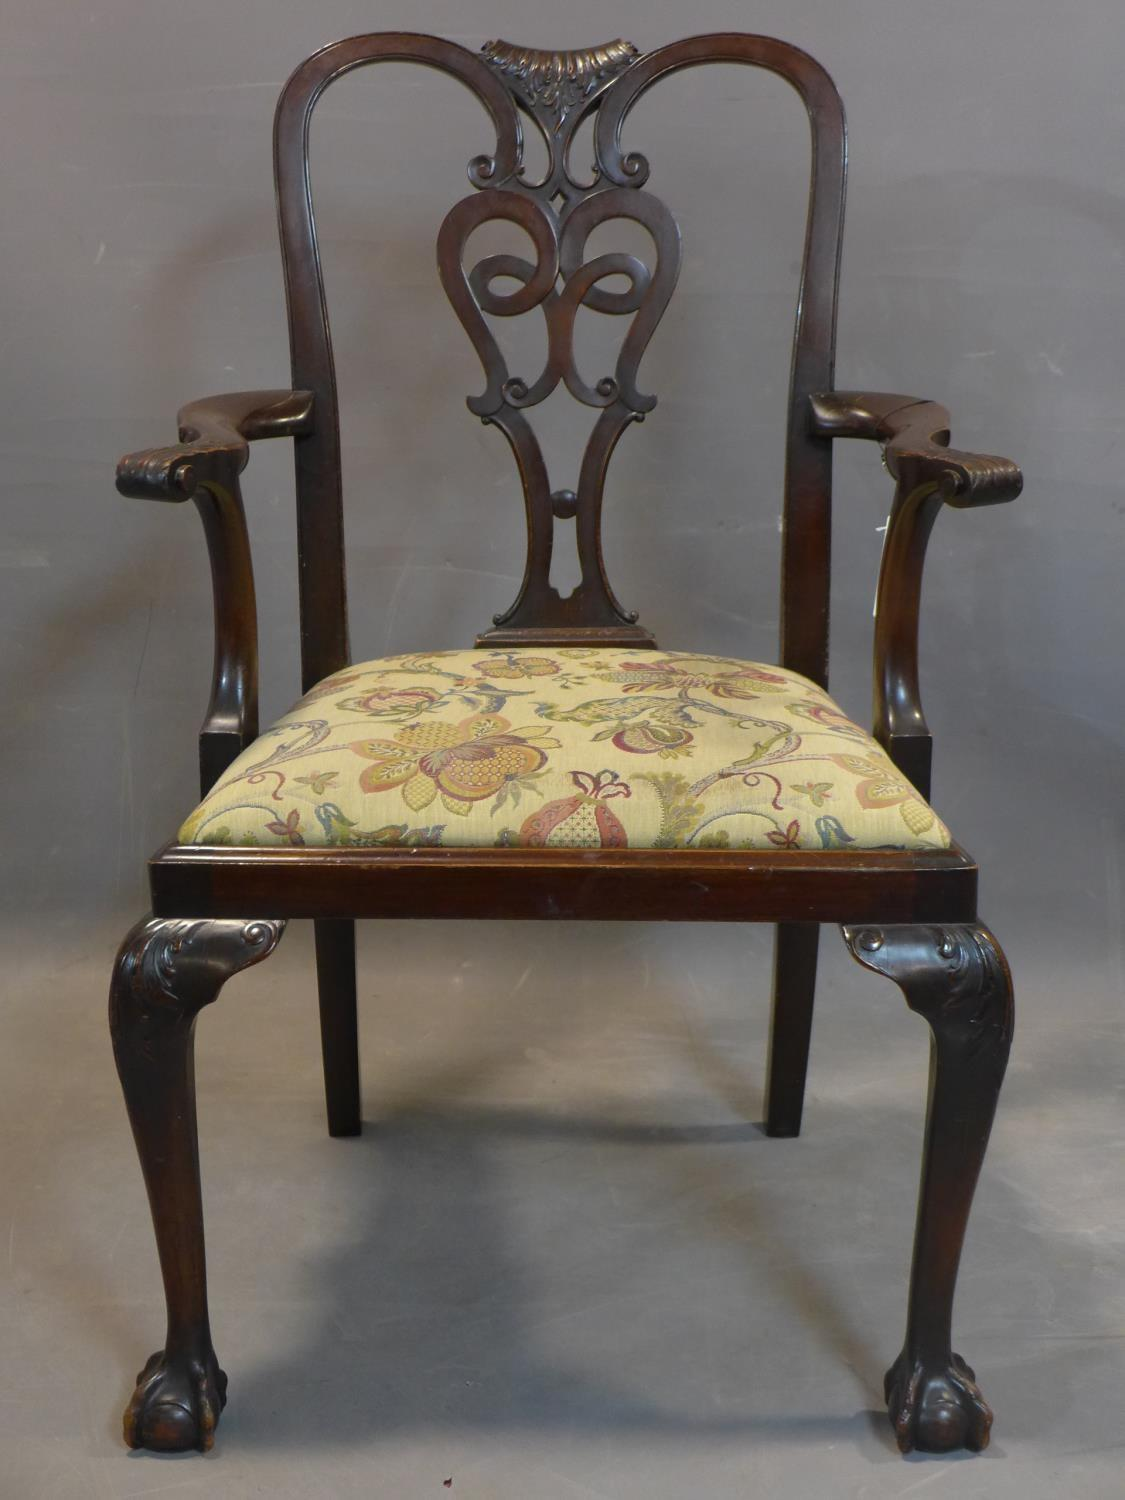 Lot 214 - 19th century mahogany Chippendale style hallway armchair, with drop-in seat and scroll arms,